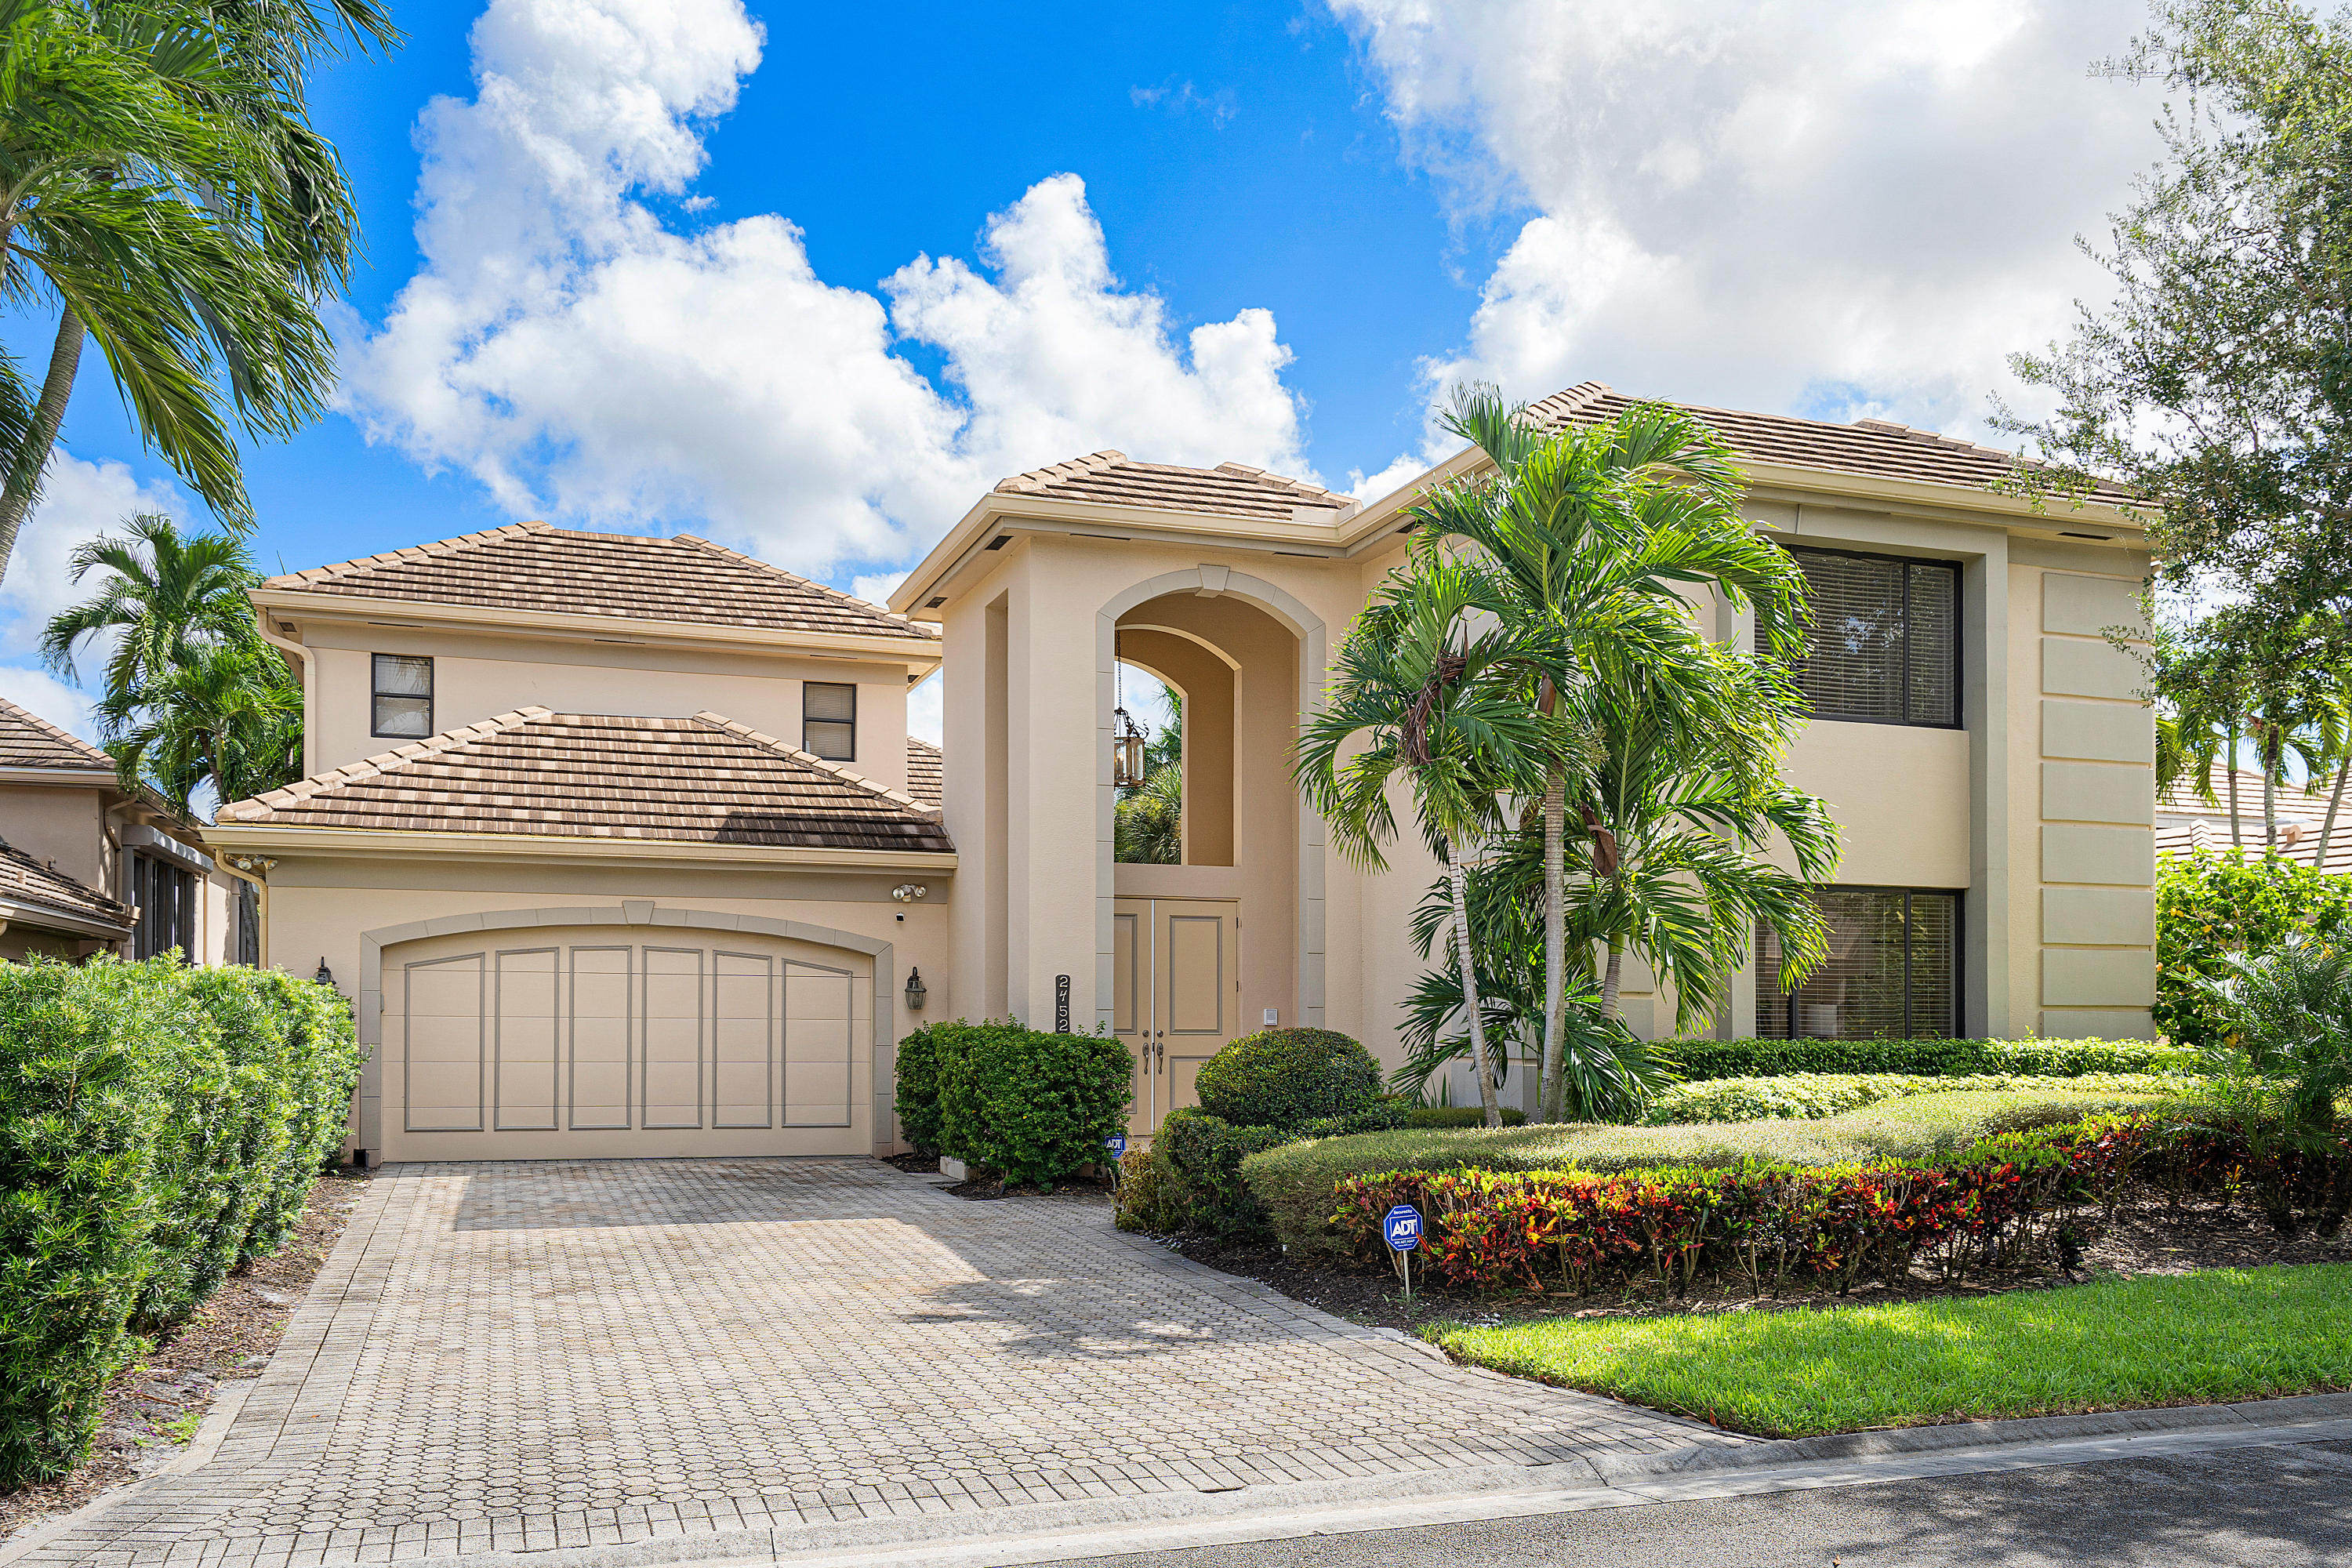 Photo of 2452 NW 62nd Street, Boca Raton, FL 33496